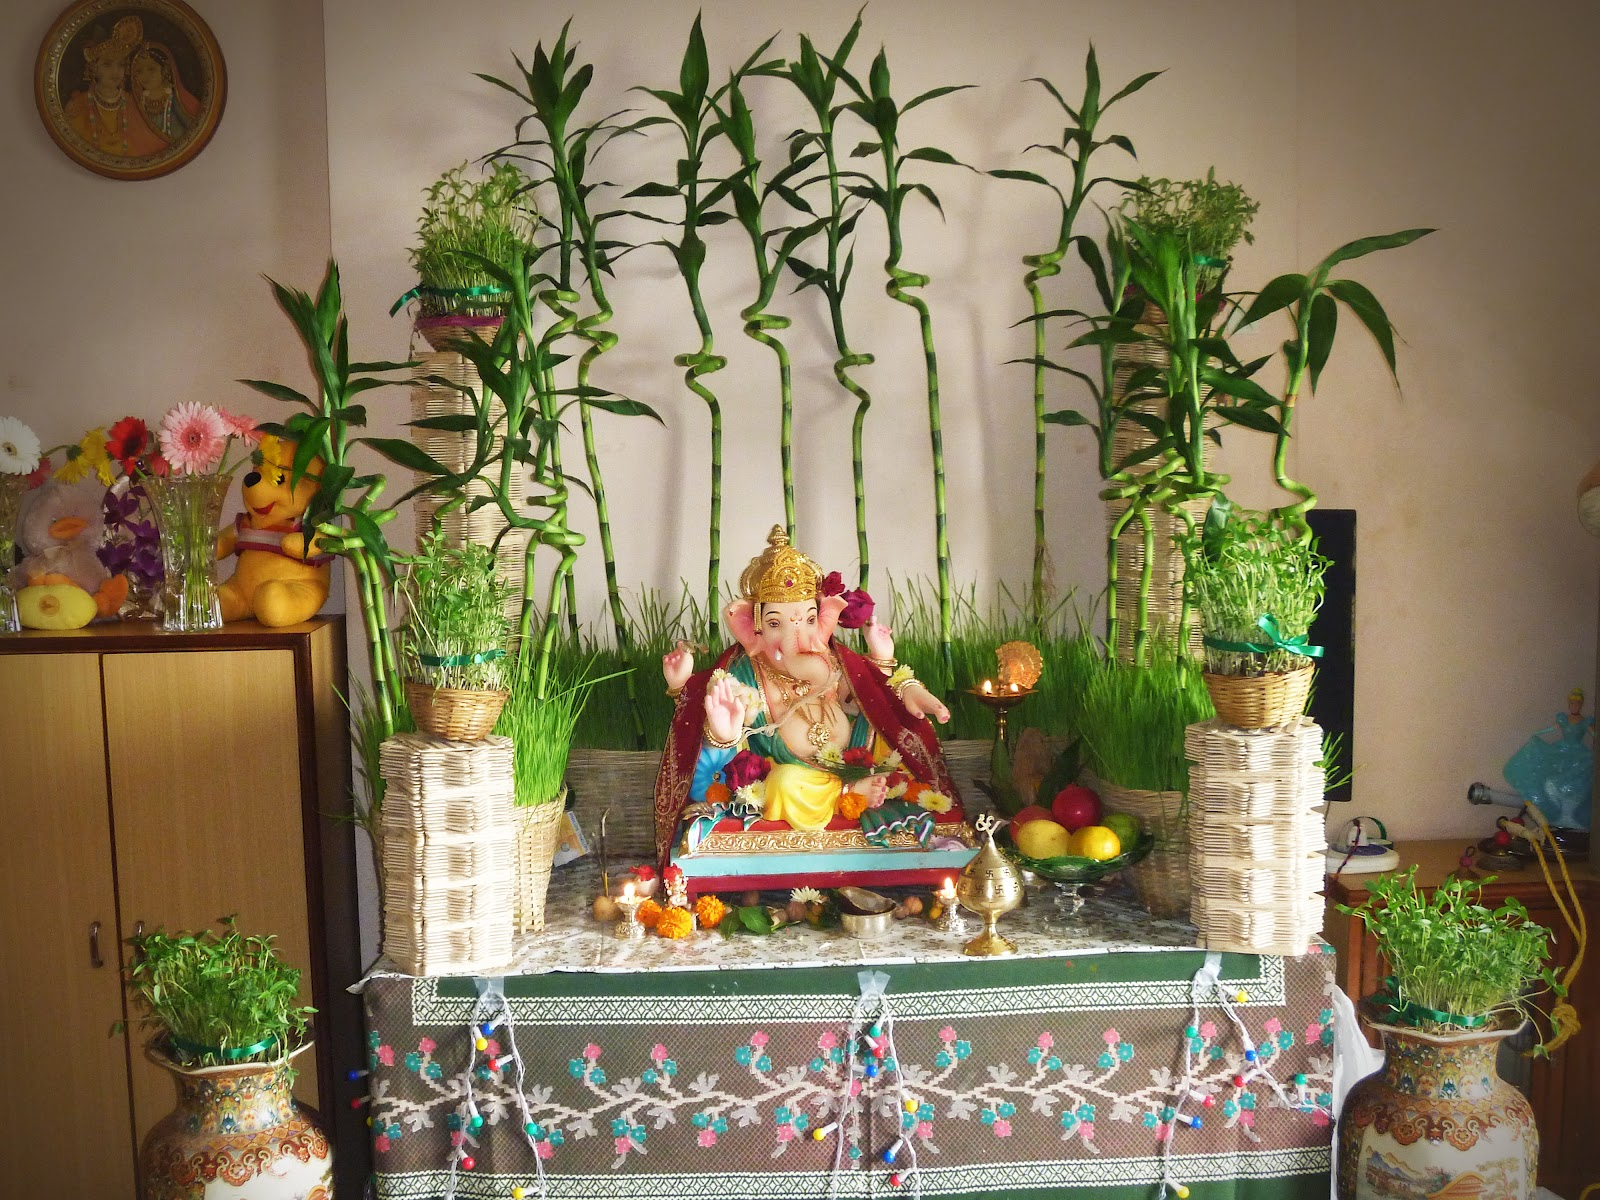 5 Simple Home Decor Ideas For Ganesh Chaturthi By Monica Chadha Founder Design Deconstruct